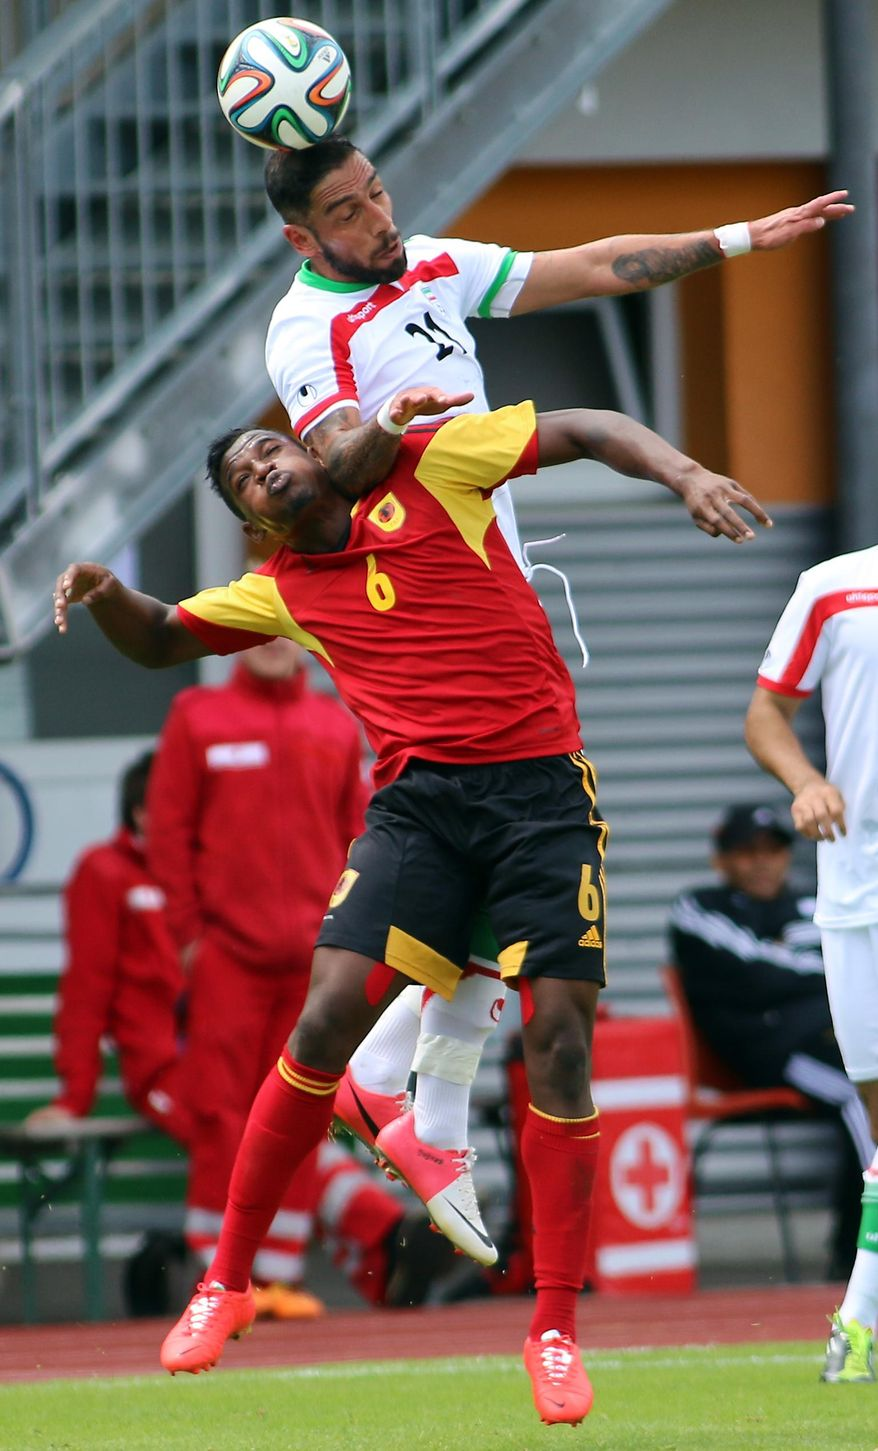 Iran's Ashkan Dejagah, right, challenges for a ball with Joaquim Adao, left, of Angola during a friendly soccer match between Iran and Angola, in Hartberg, Austria, Friday, May 30, 2014. (AP Photo/Ronald Zak)